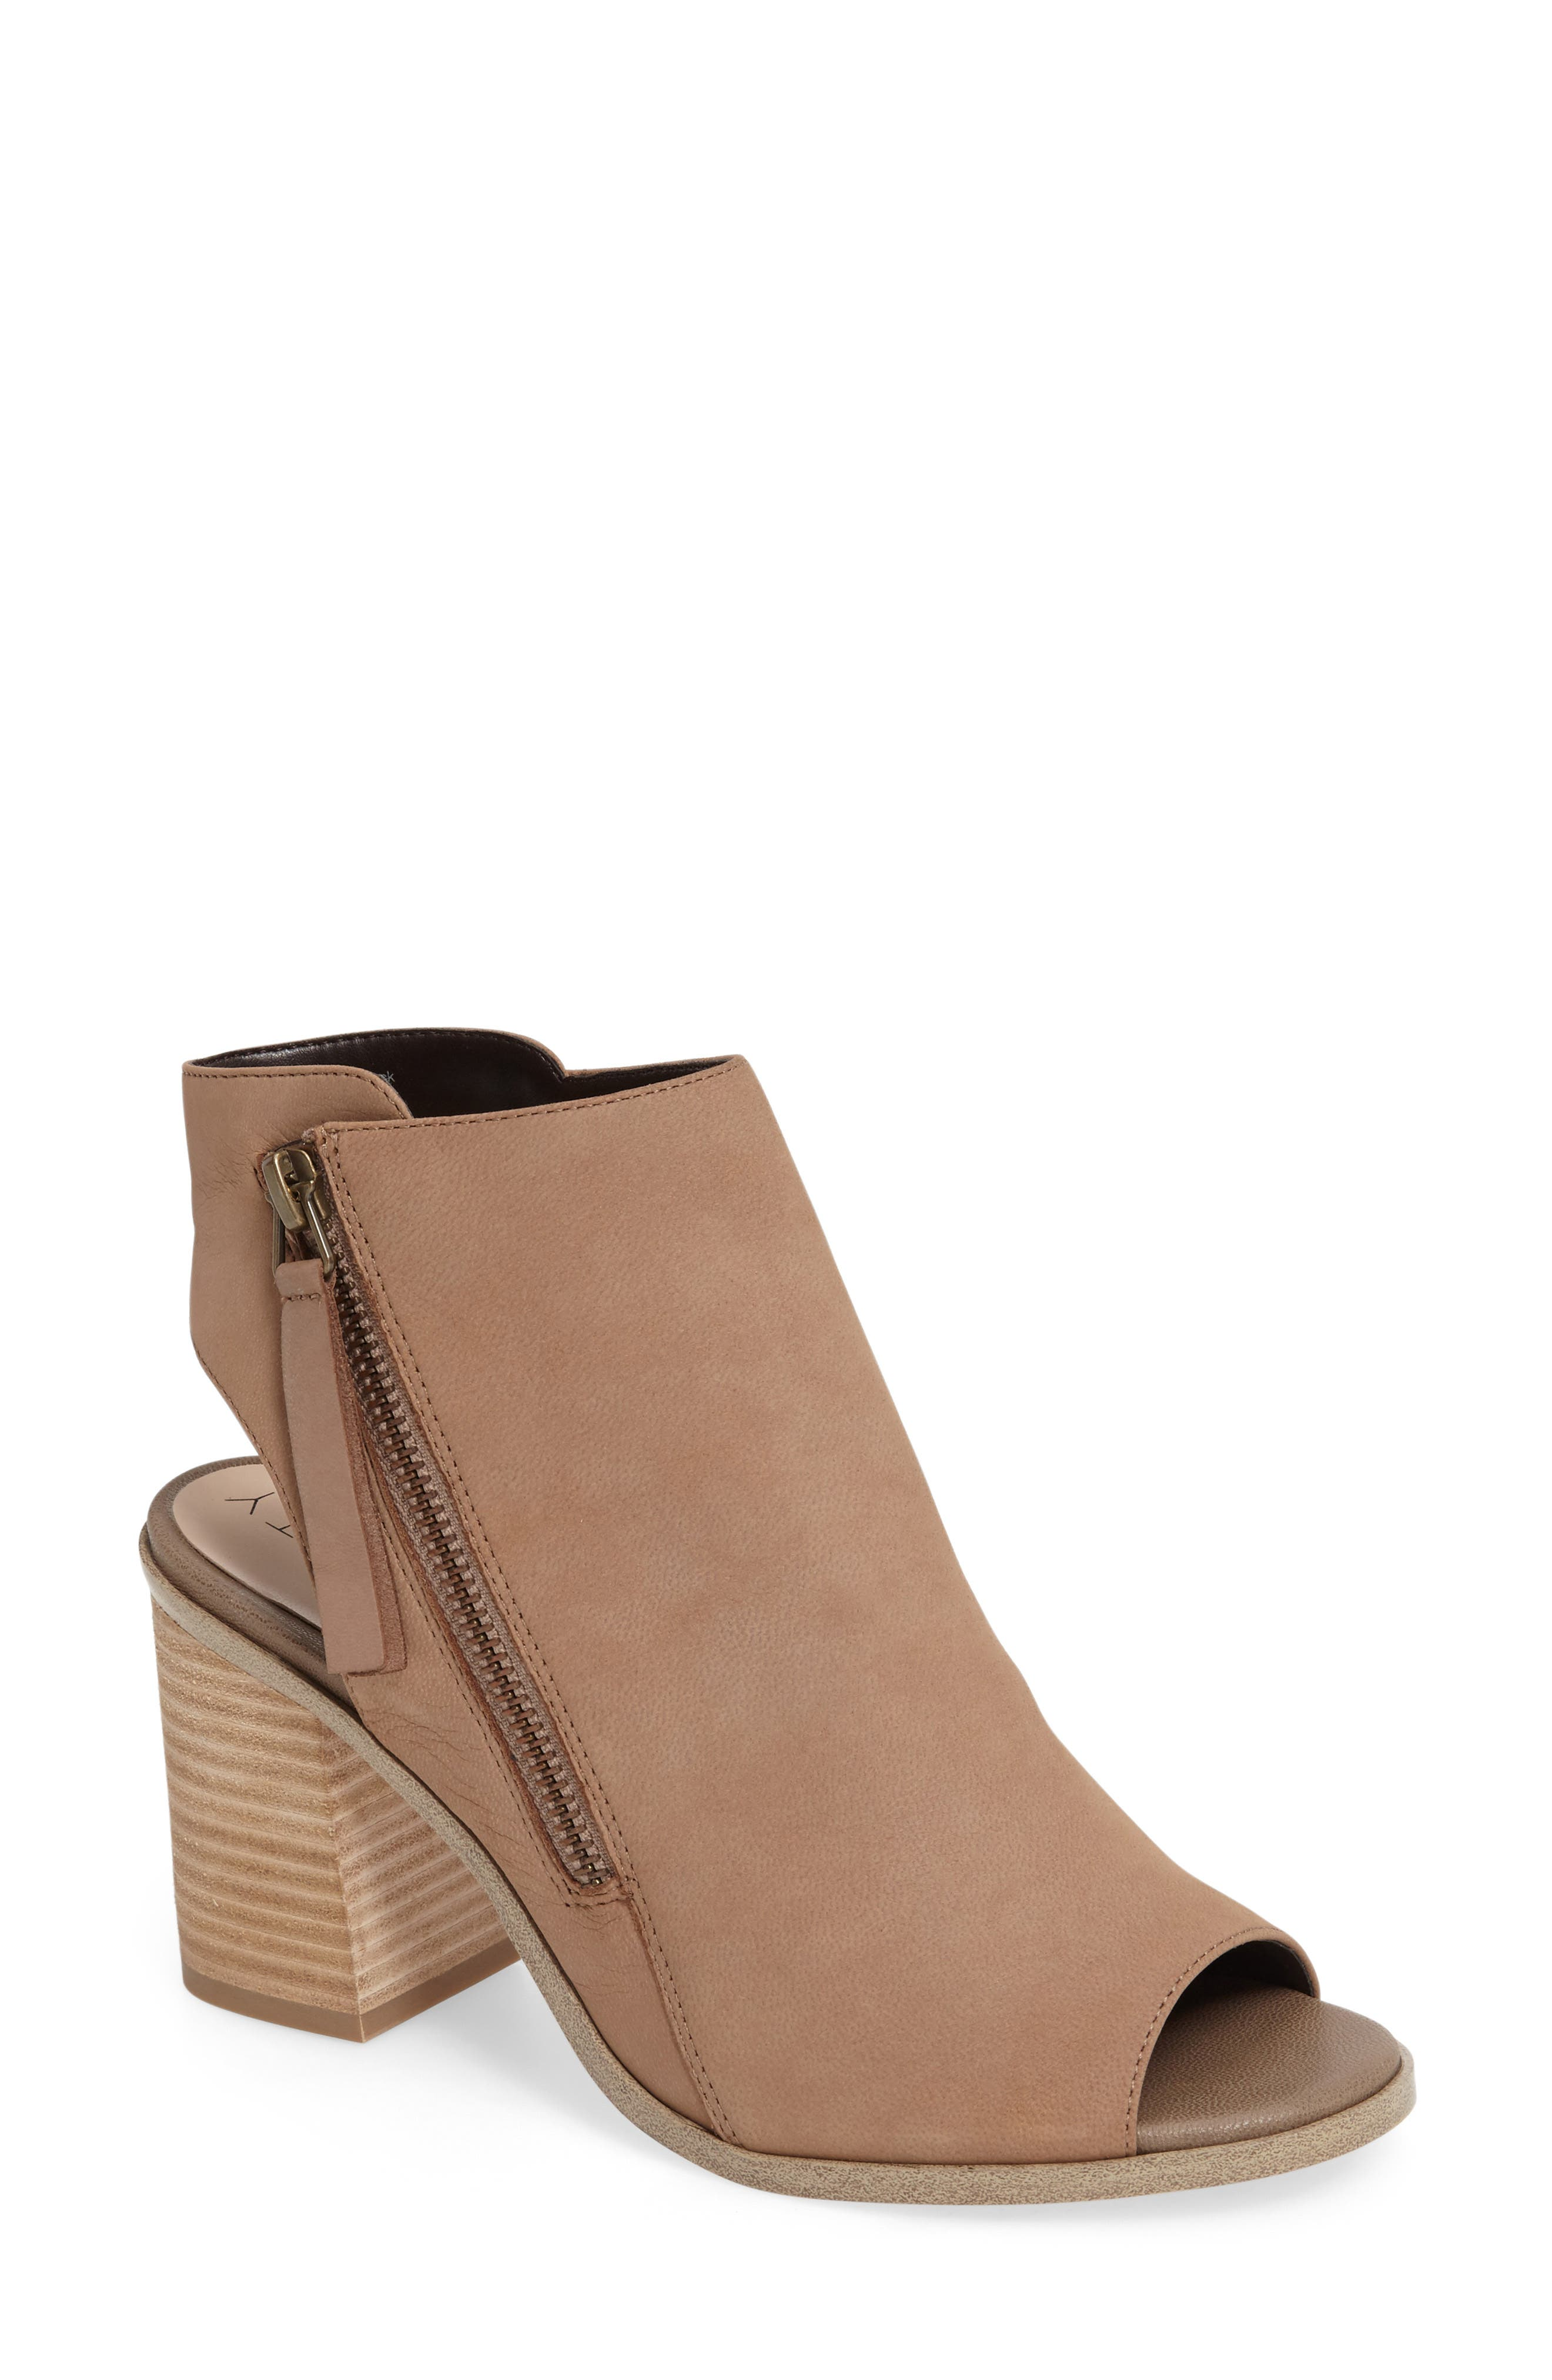 Alternate Image 1 Selected - Sole Society Arizona Block Heel Peep-Toe Bootie (Women)